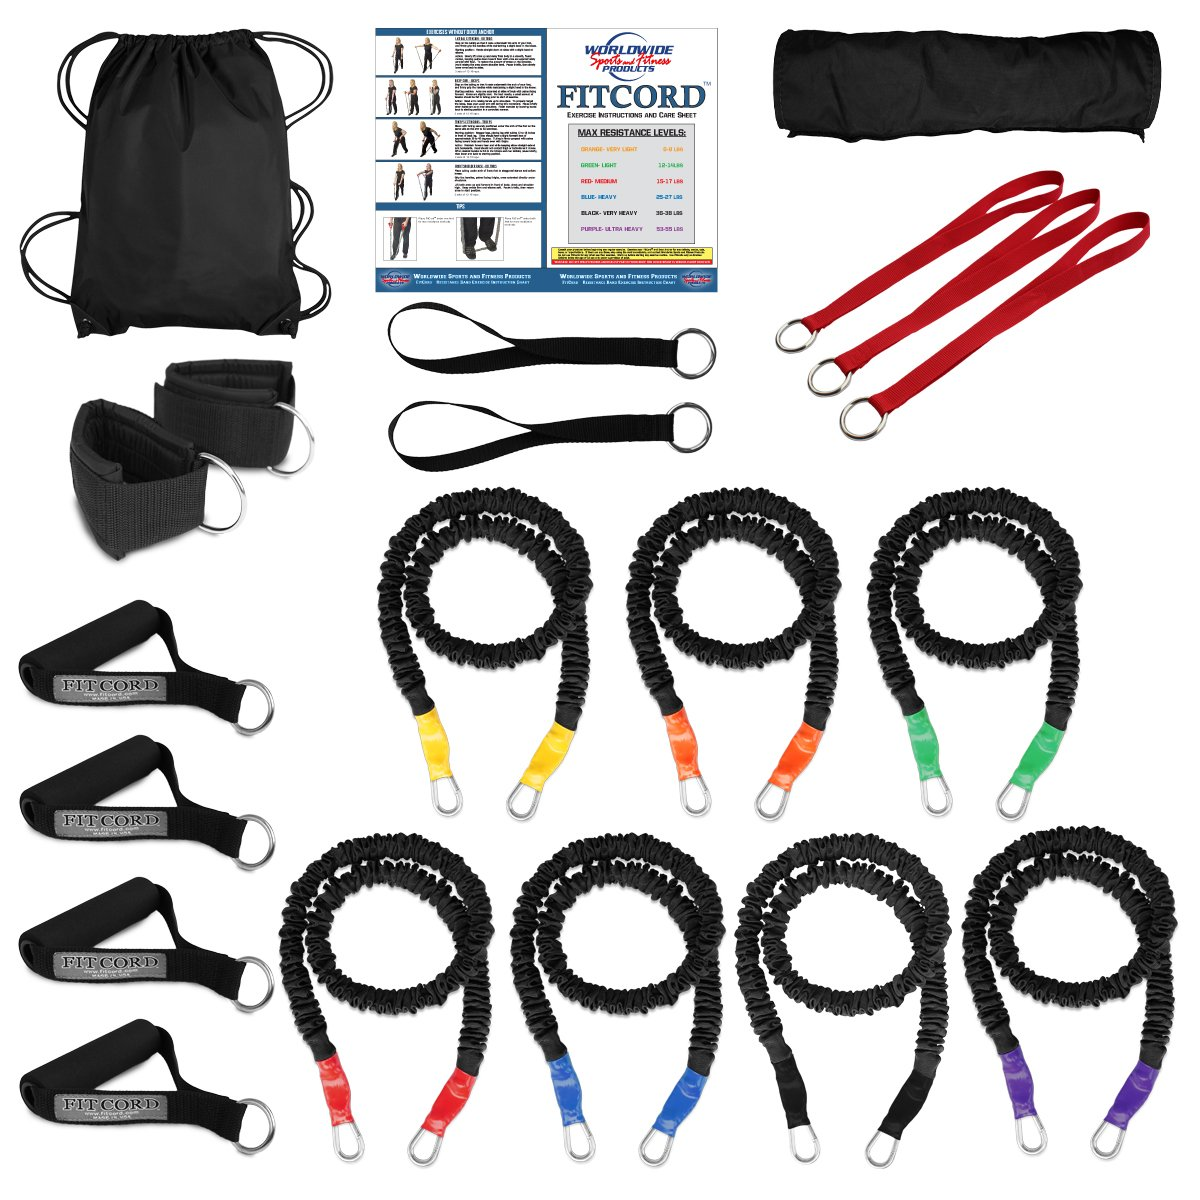 """FitCord """"BRUTE"""" Band Load Kits. American Made. Home & Portable Gyms. 7 Highest Grade Safety Sleeve Bands, Handles, Door Anchor, Ankle & Wrist Straps, Bag & Exercise Manual.."""